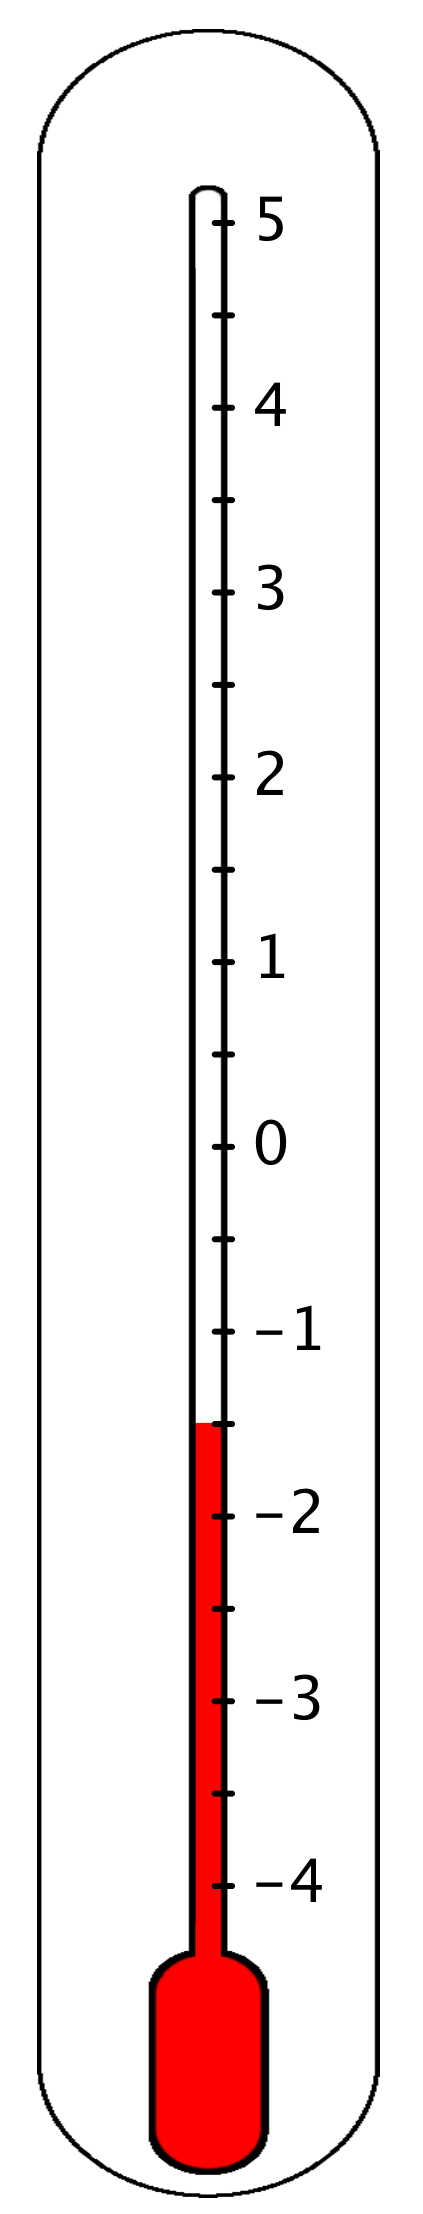 A thermometer is labeled from negative 4 through 5 with negative at the bottom of the thermometer. There are tick marks halfway between each integer. The thermometer is shaded from the bottom of the thermometer to the tick mark between negative 2 and negative 1.